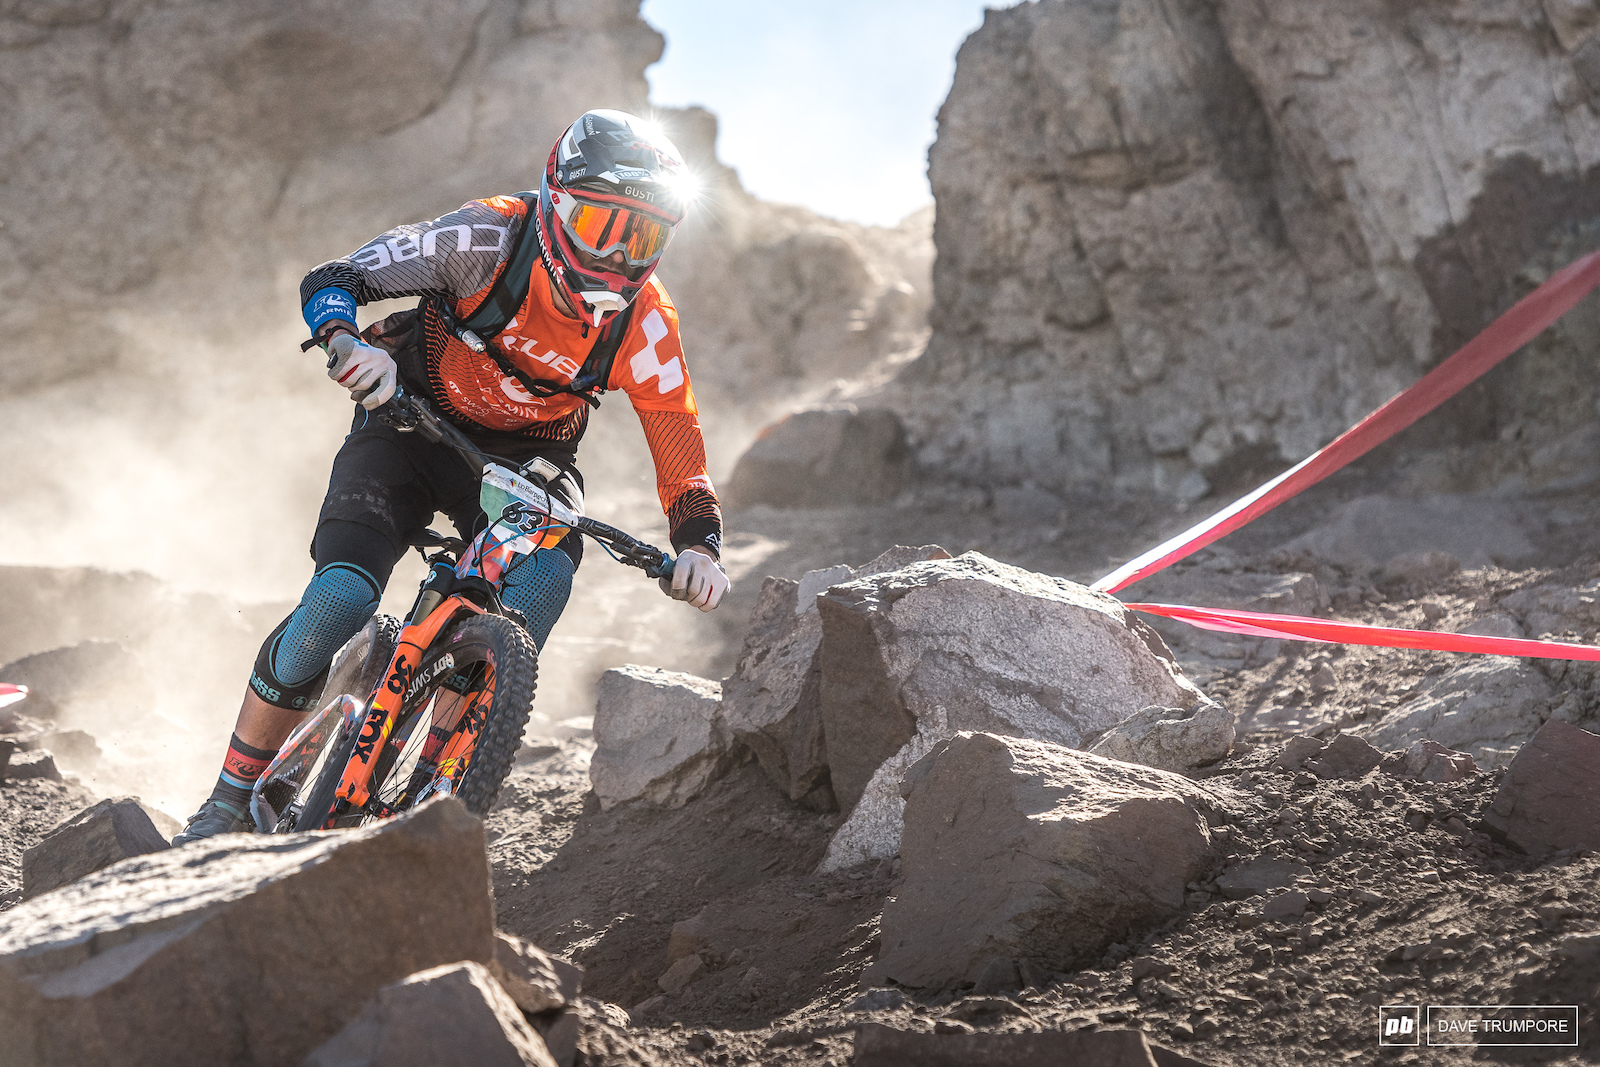 What a ride for Gusti Wildhaber to move into 4th in the overall.